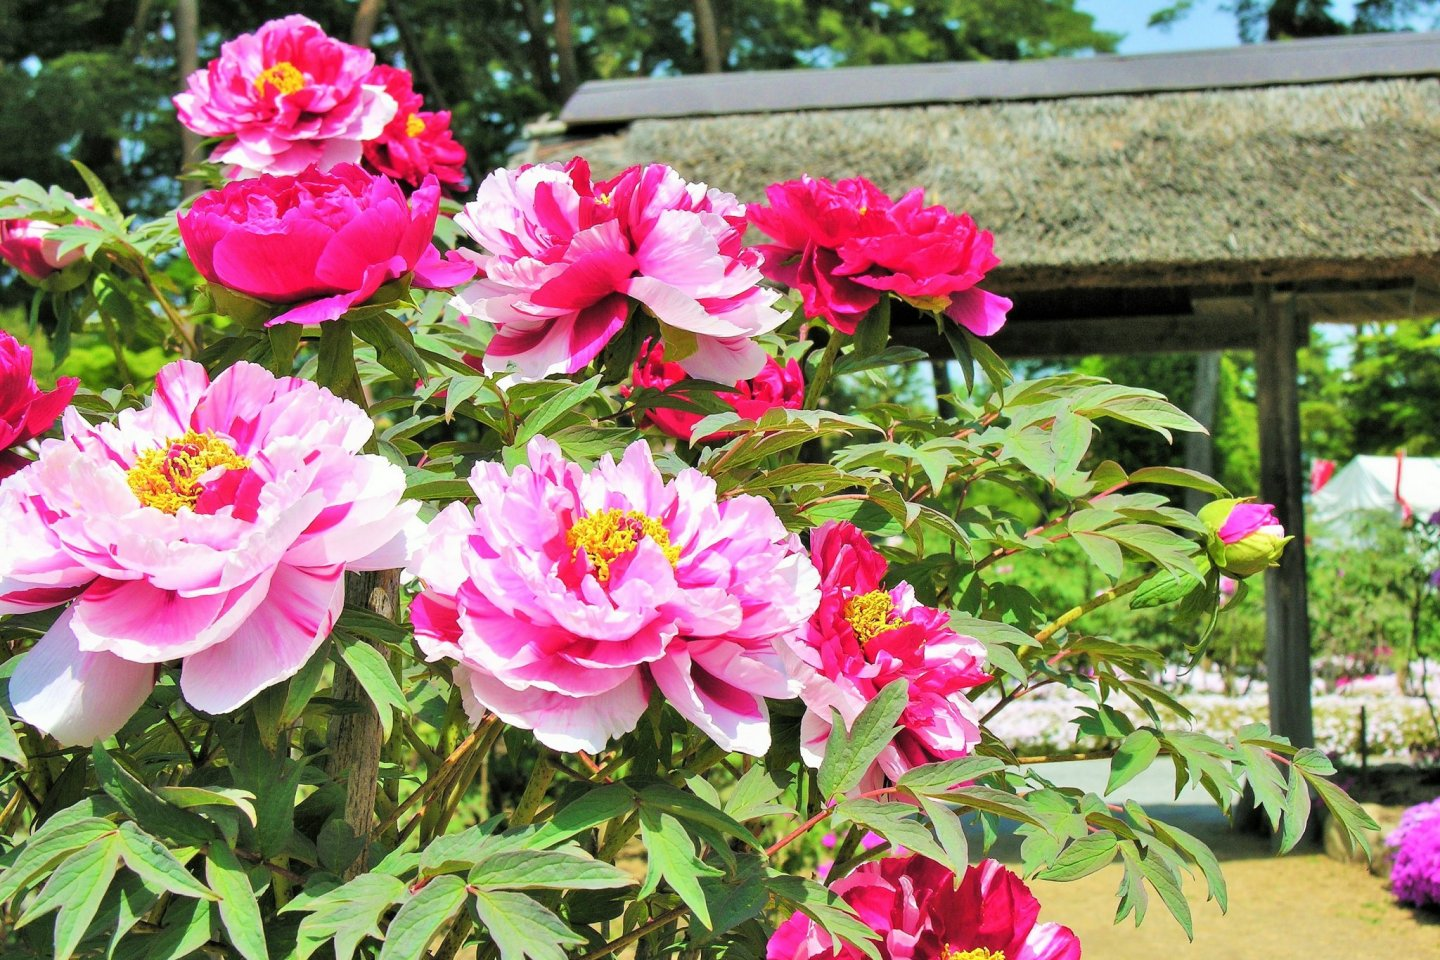 Flowers in bloom at the Sukagawa Peony Garden